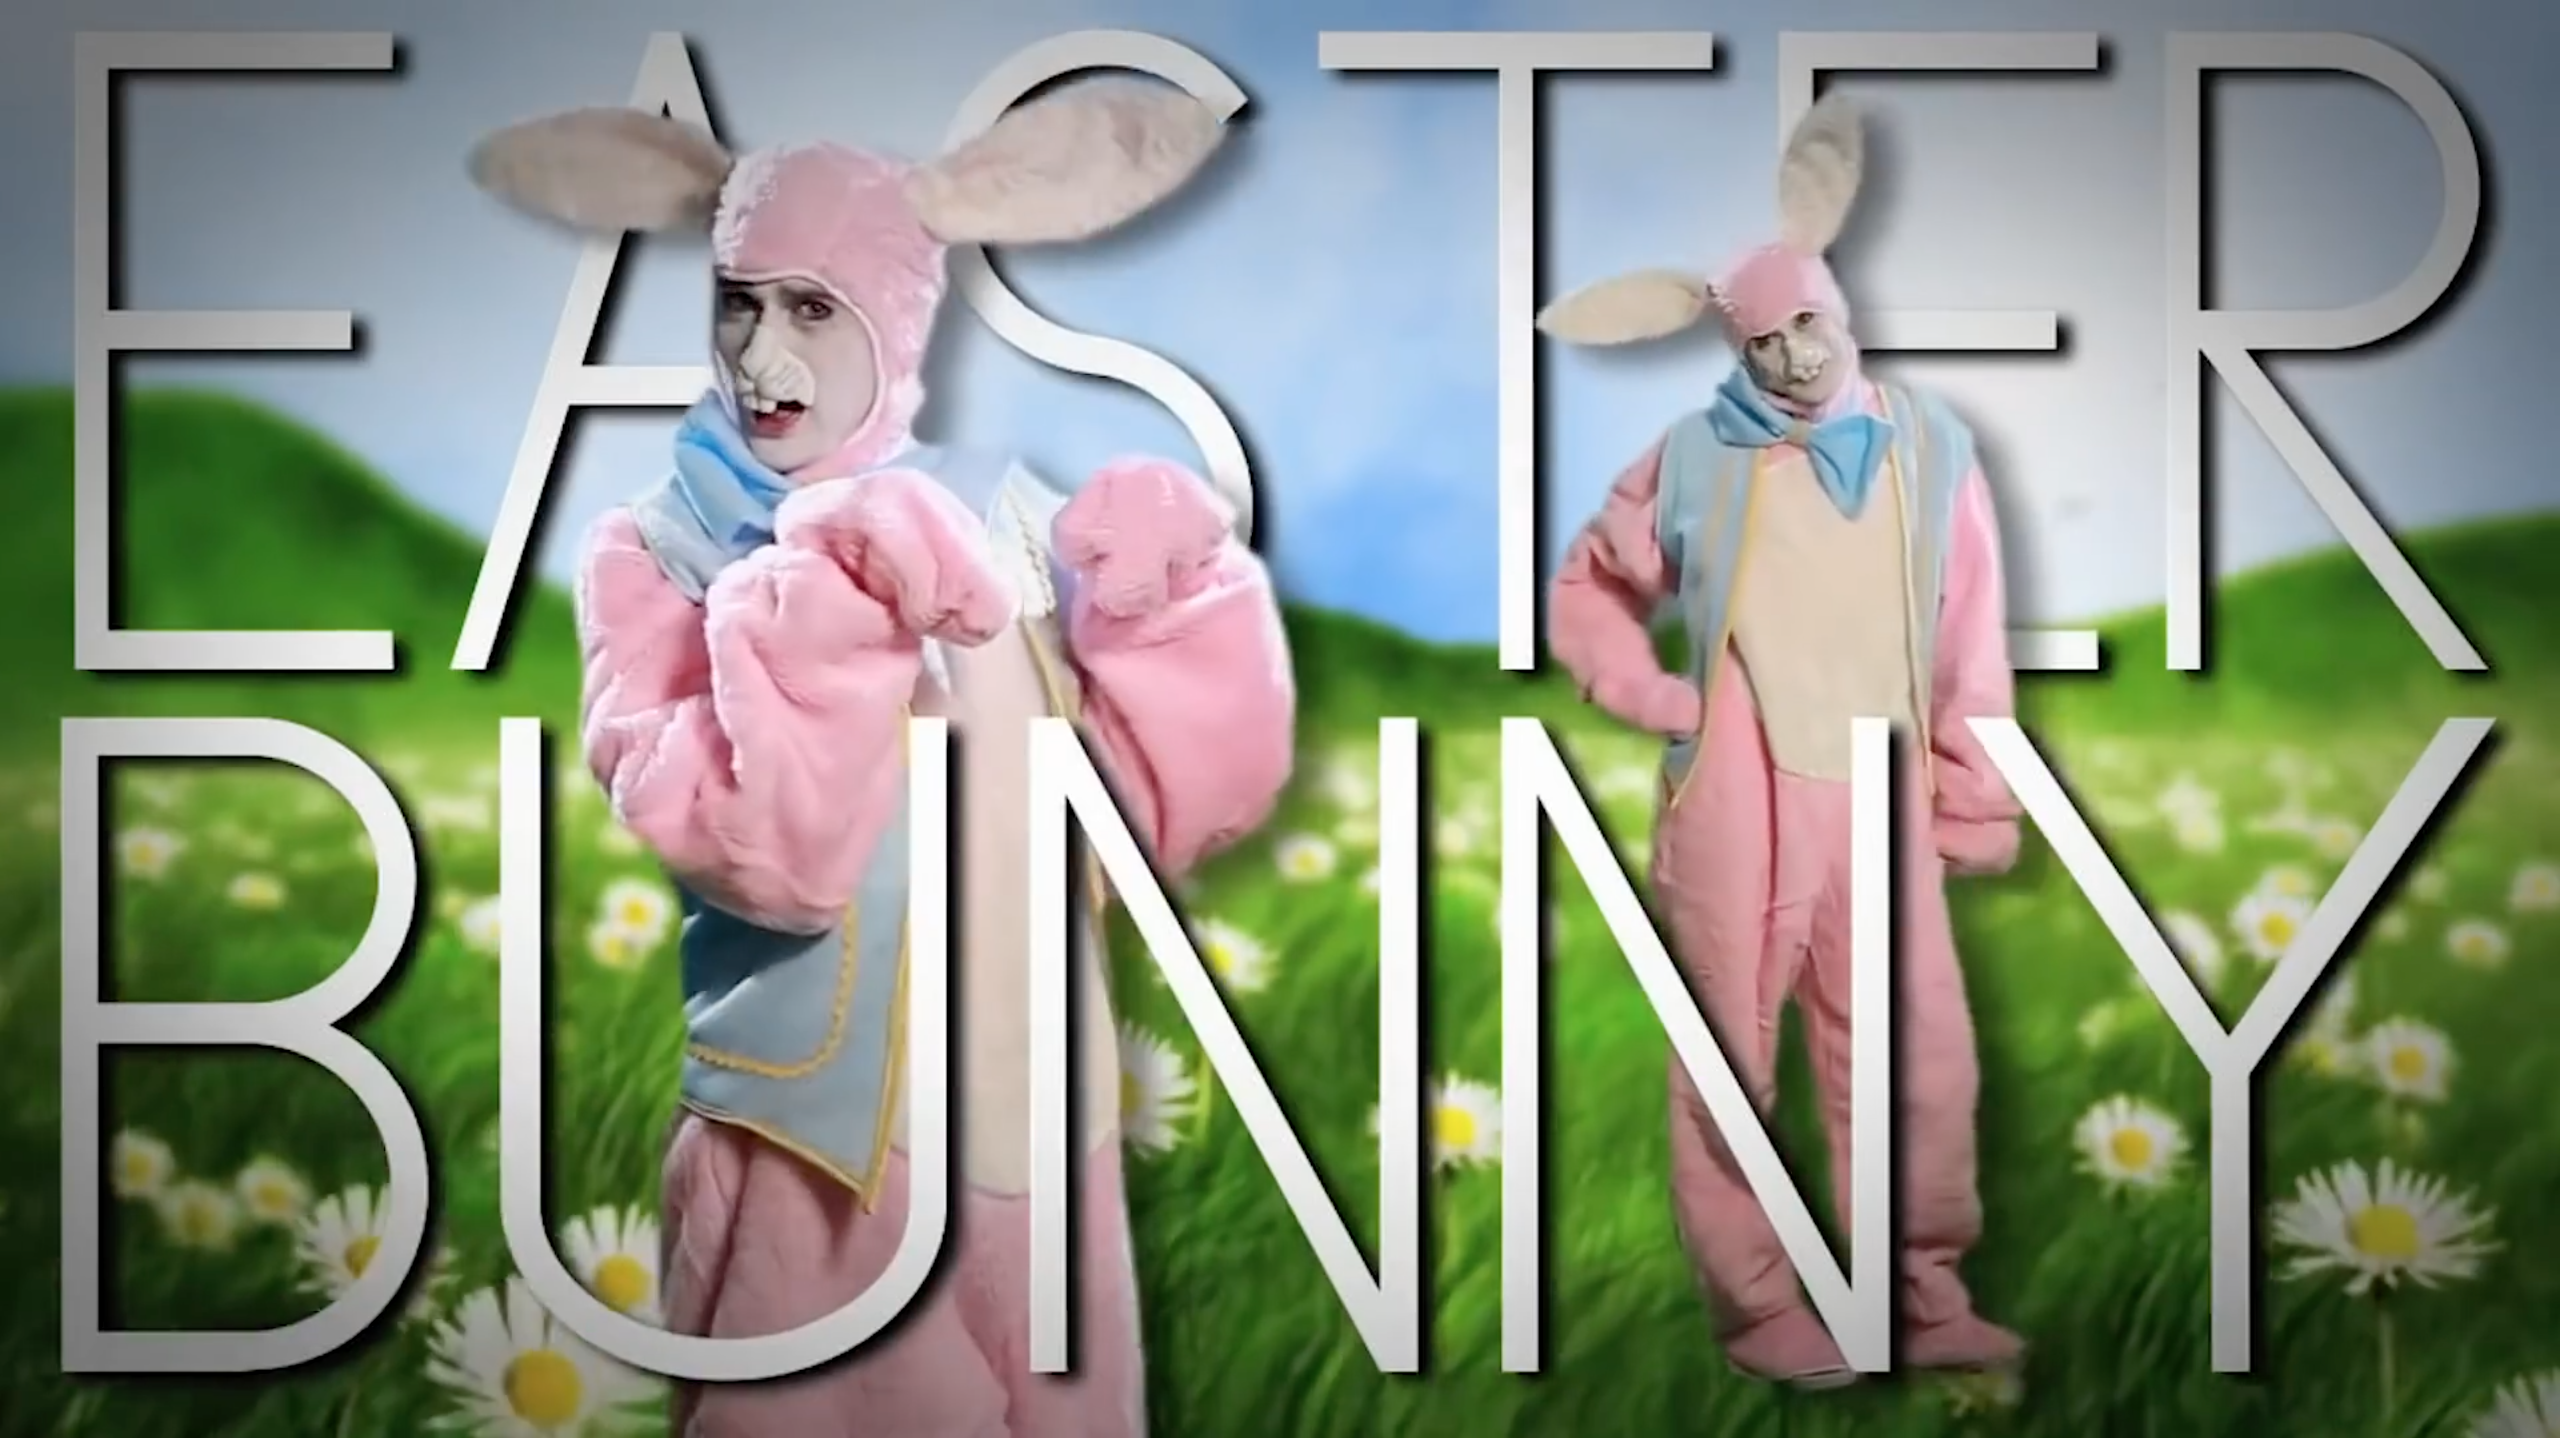 easter bunny epic rap battles of history wiki fandom powered